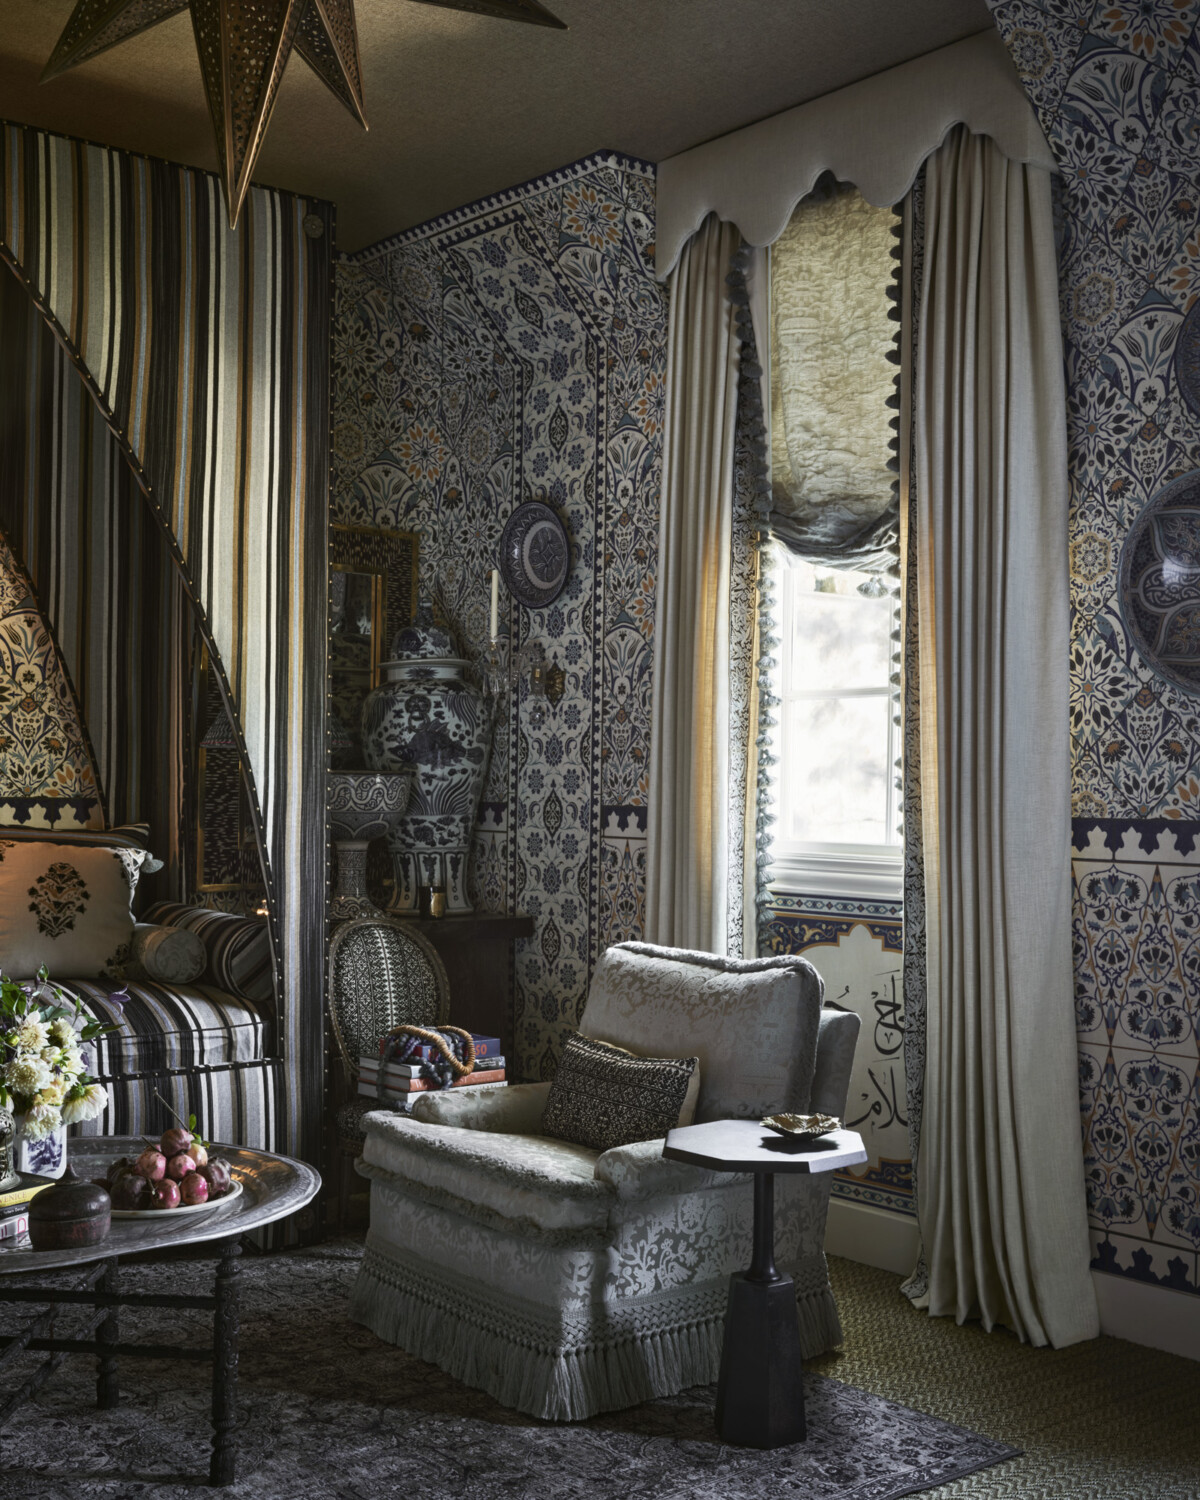 Blue-and-white Moroccan-inspired interior design by Michelle Nussbaumer for Kips Bay Dallas Showhouse 2020